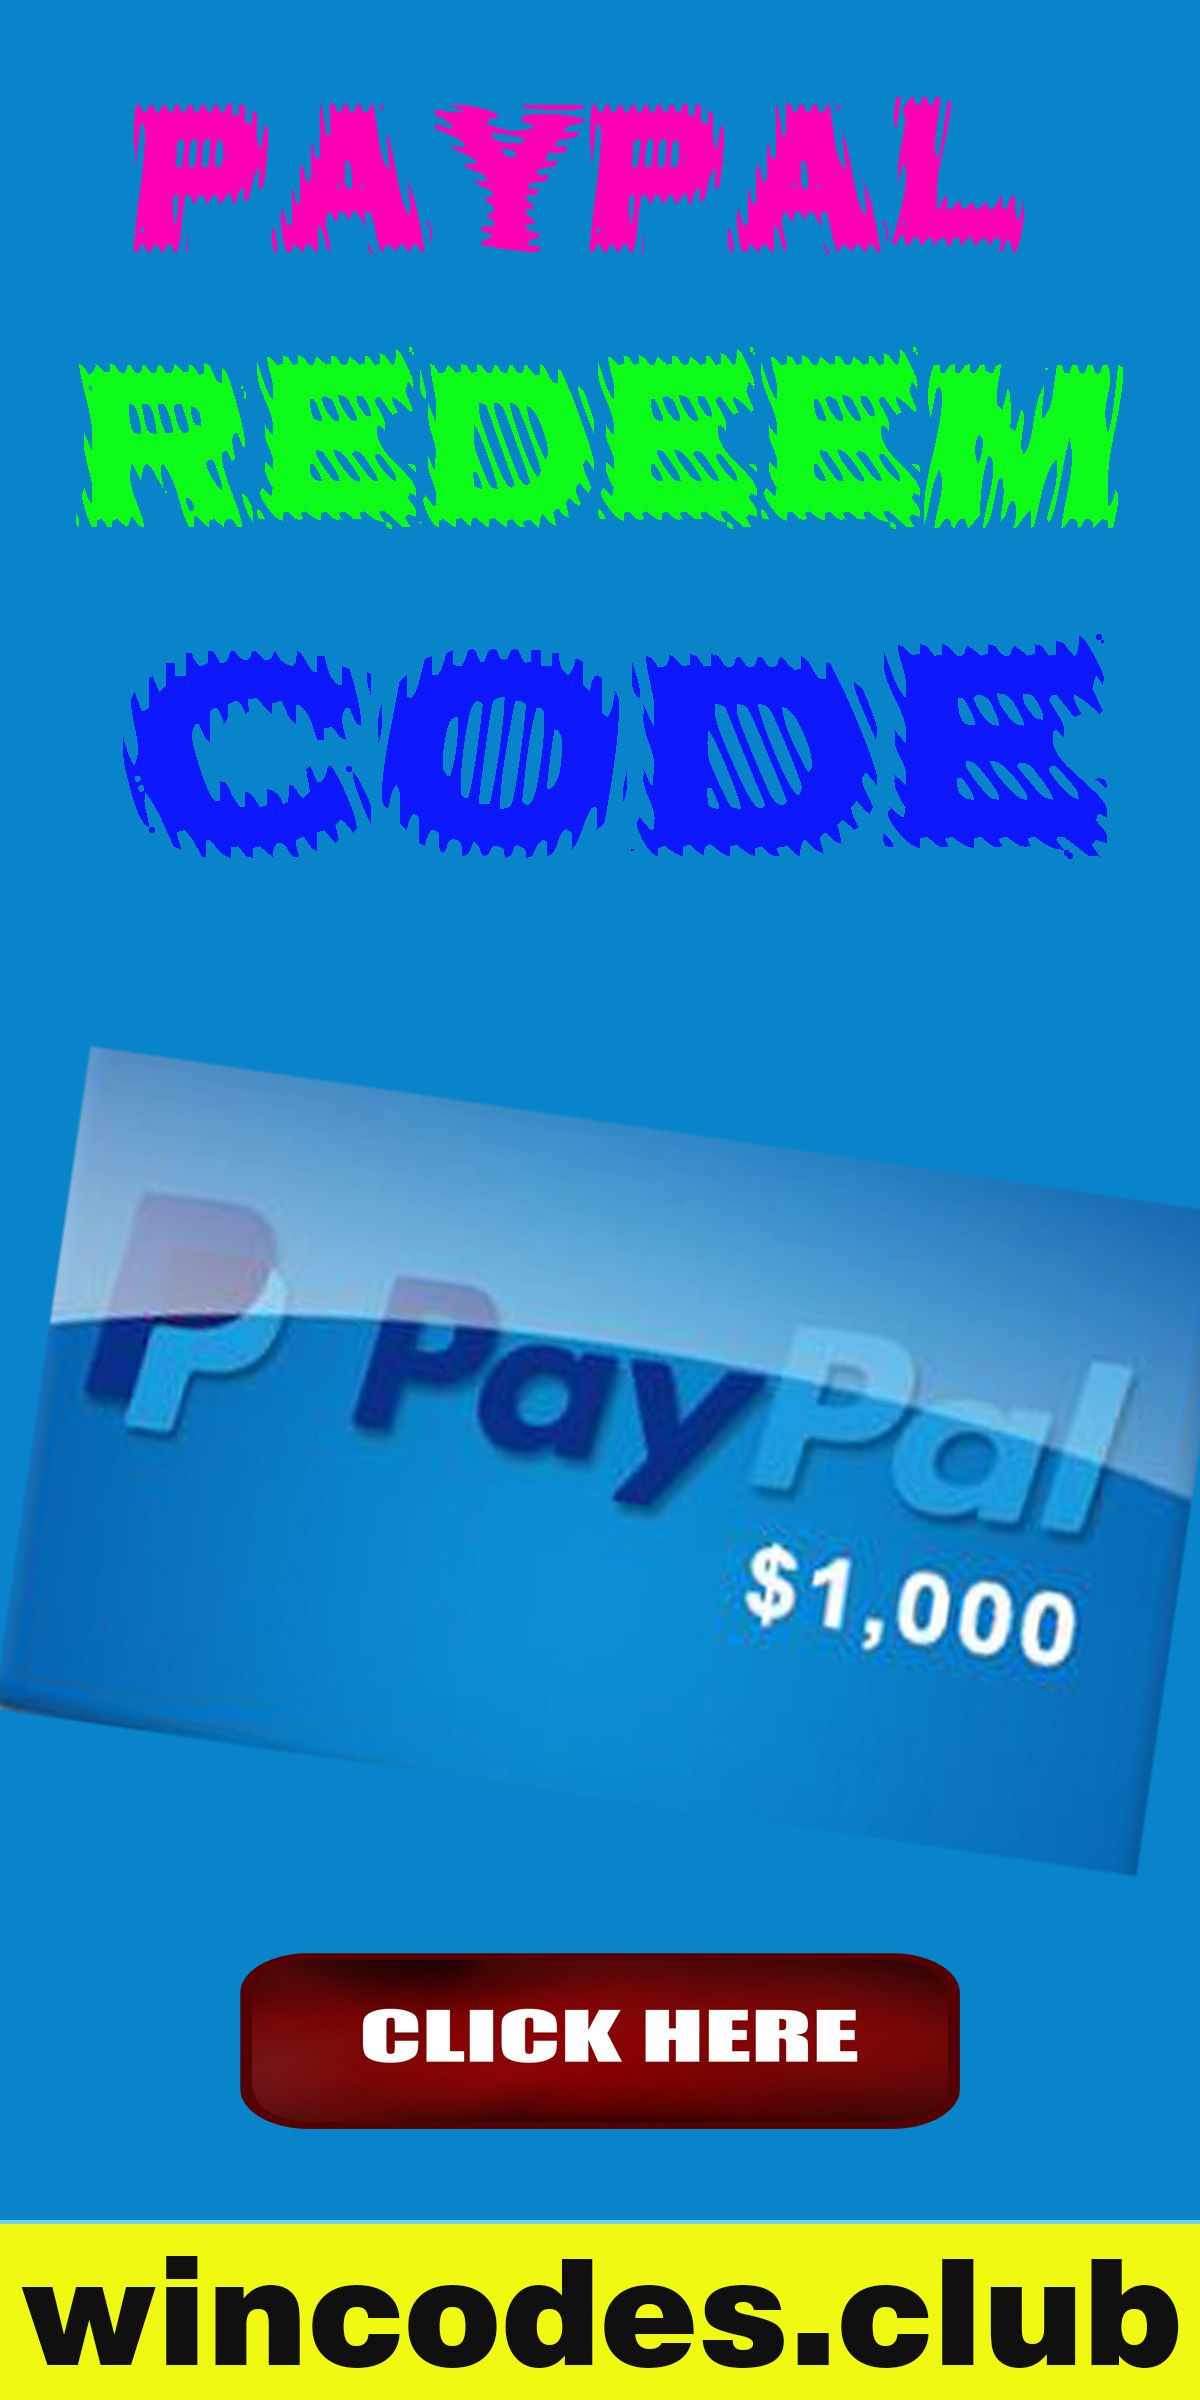 Free paypal gift card in 2020 paypal gift card